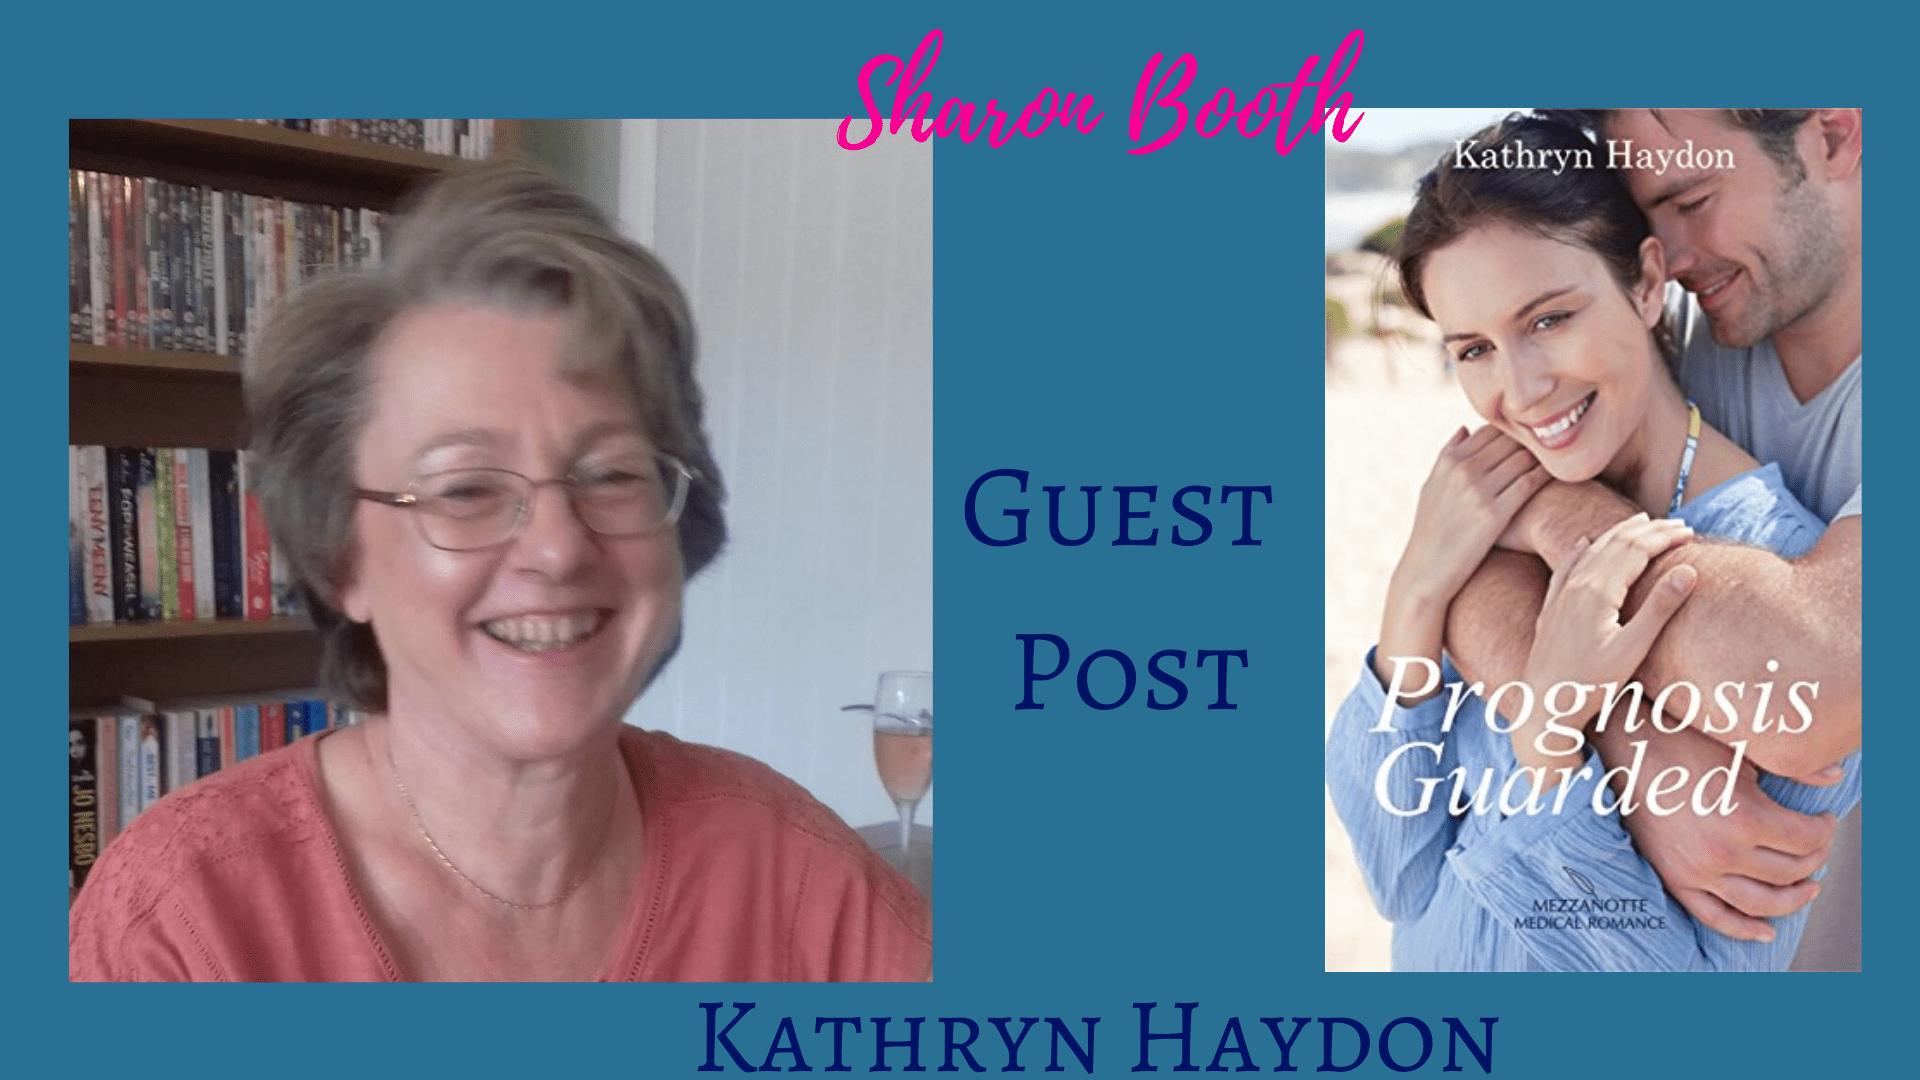 My Writing Day by Kathryn Haydon